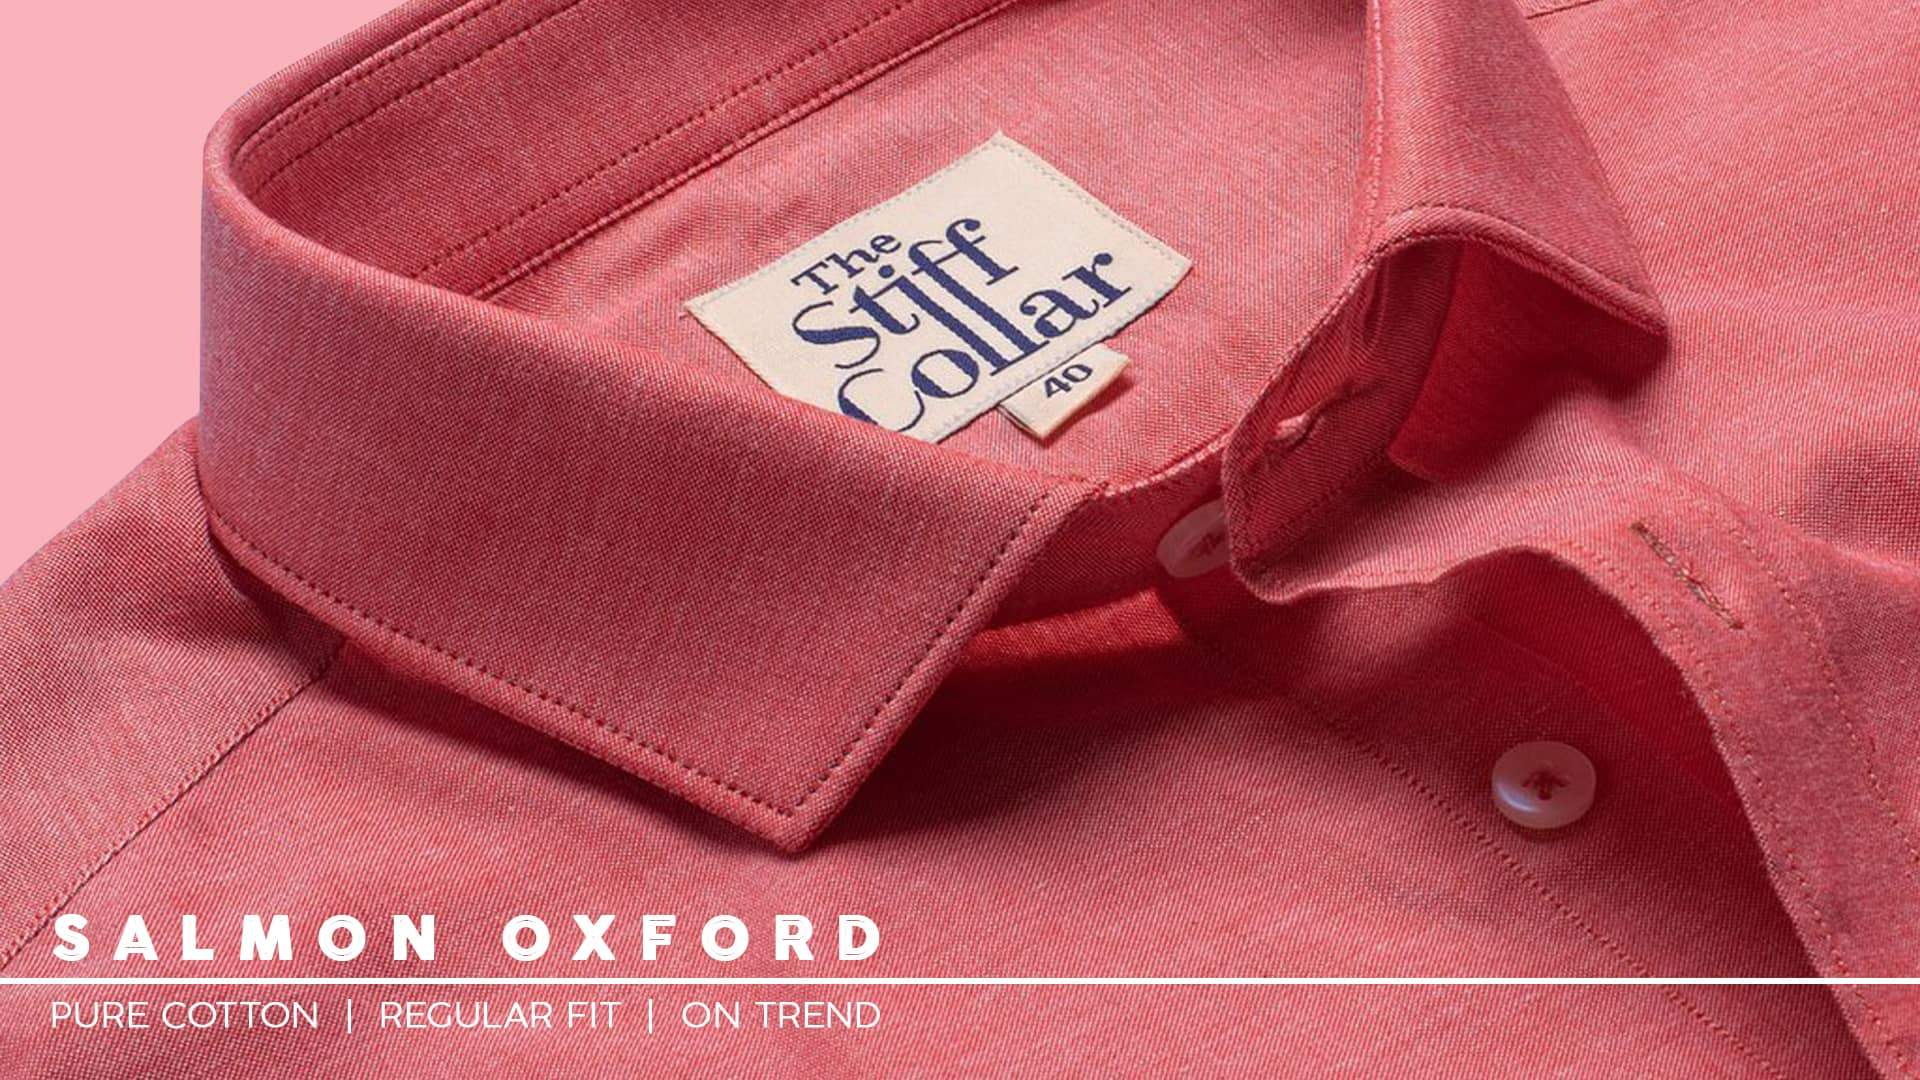 928f7a1830a Cotton Shirts for Men | Buy Shirts Online India - Thestiffcollar